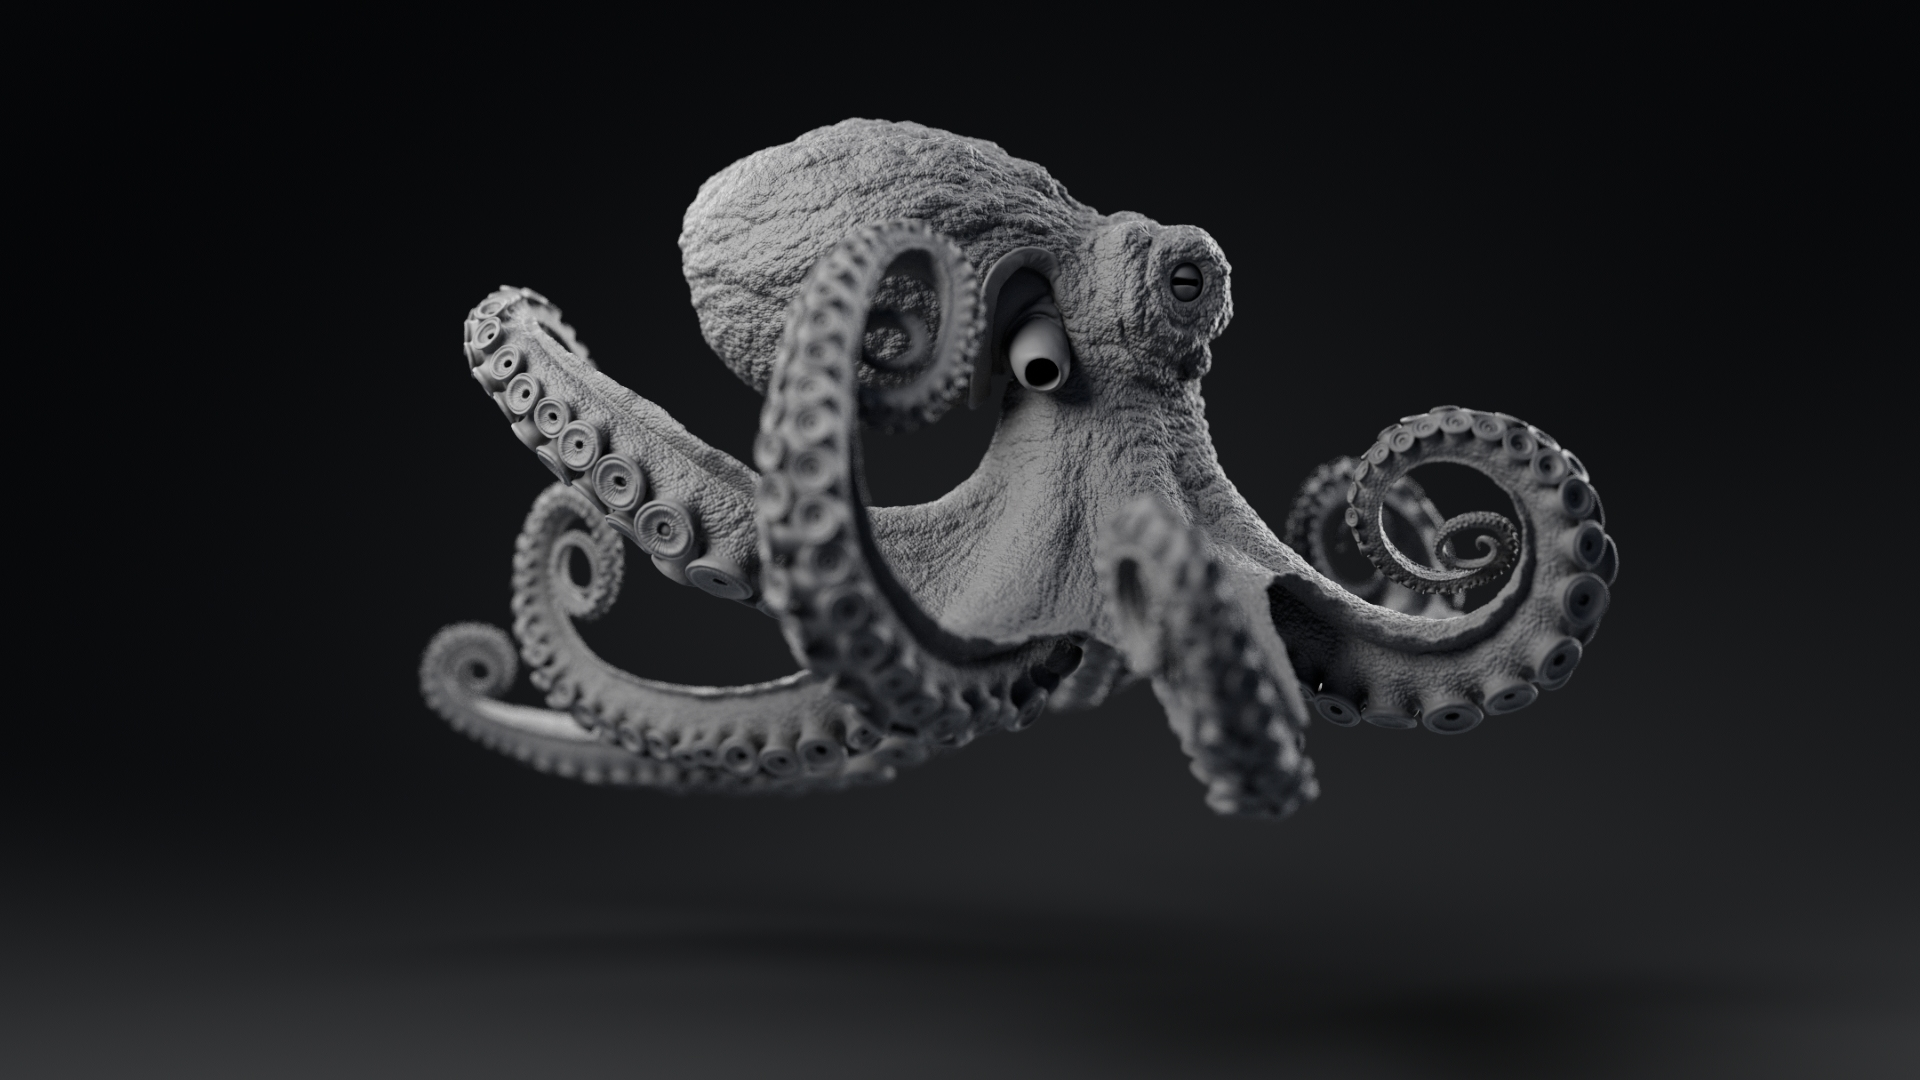 Octopus_model_TurntableFrames_Grey_ZbrushCentral_v021_0090.jpg